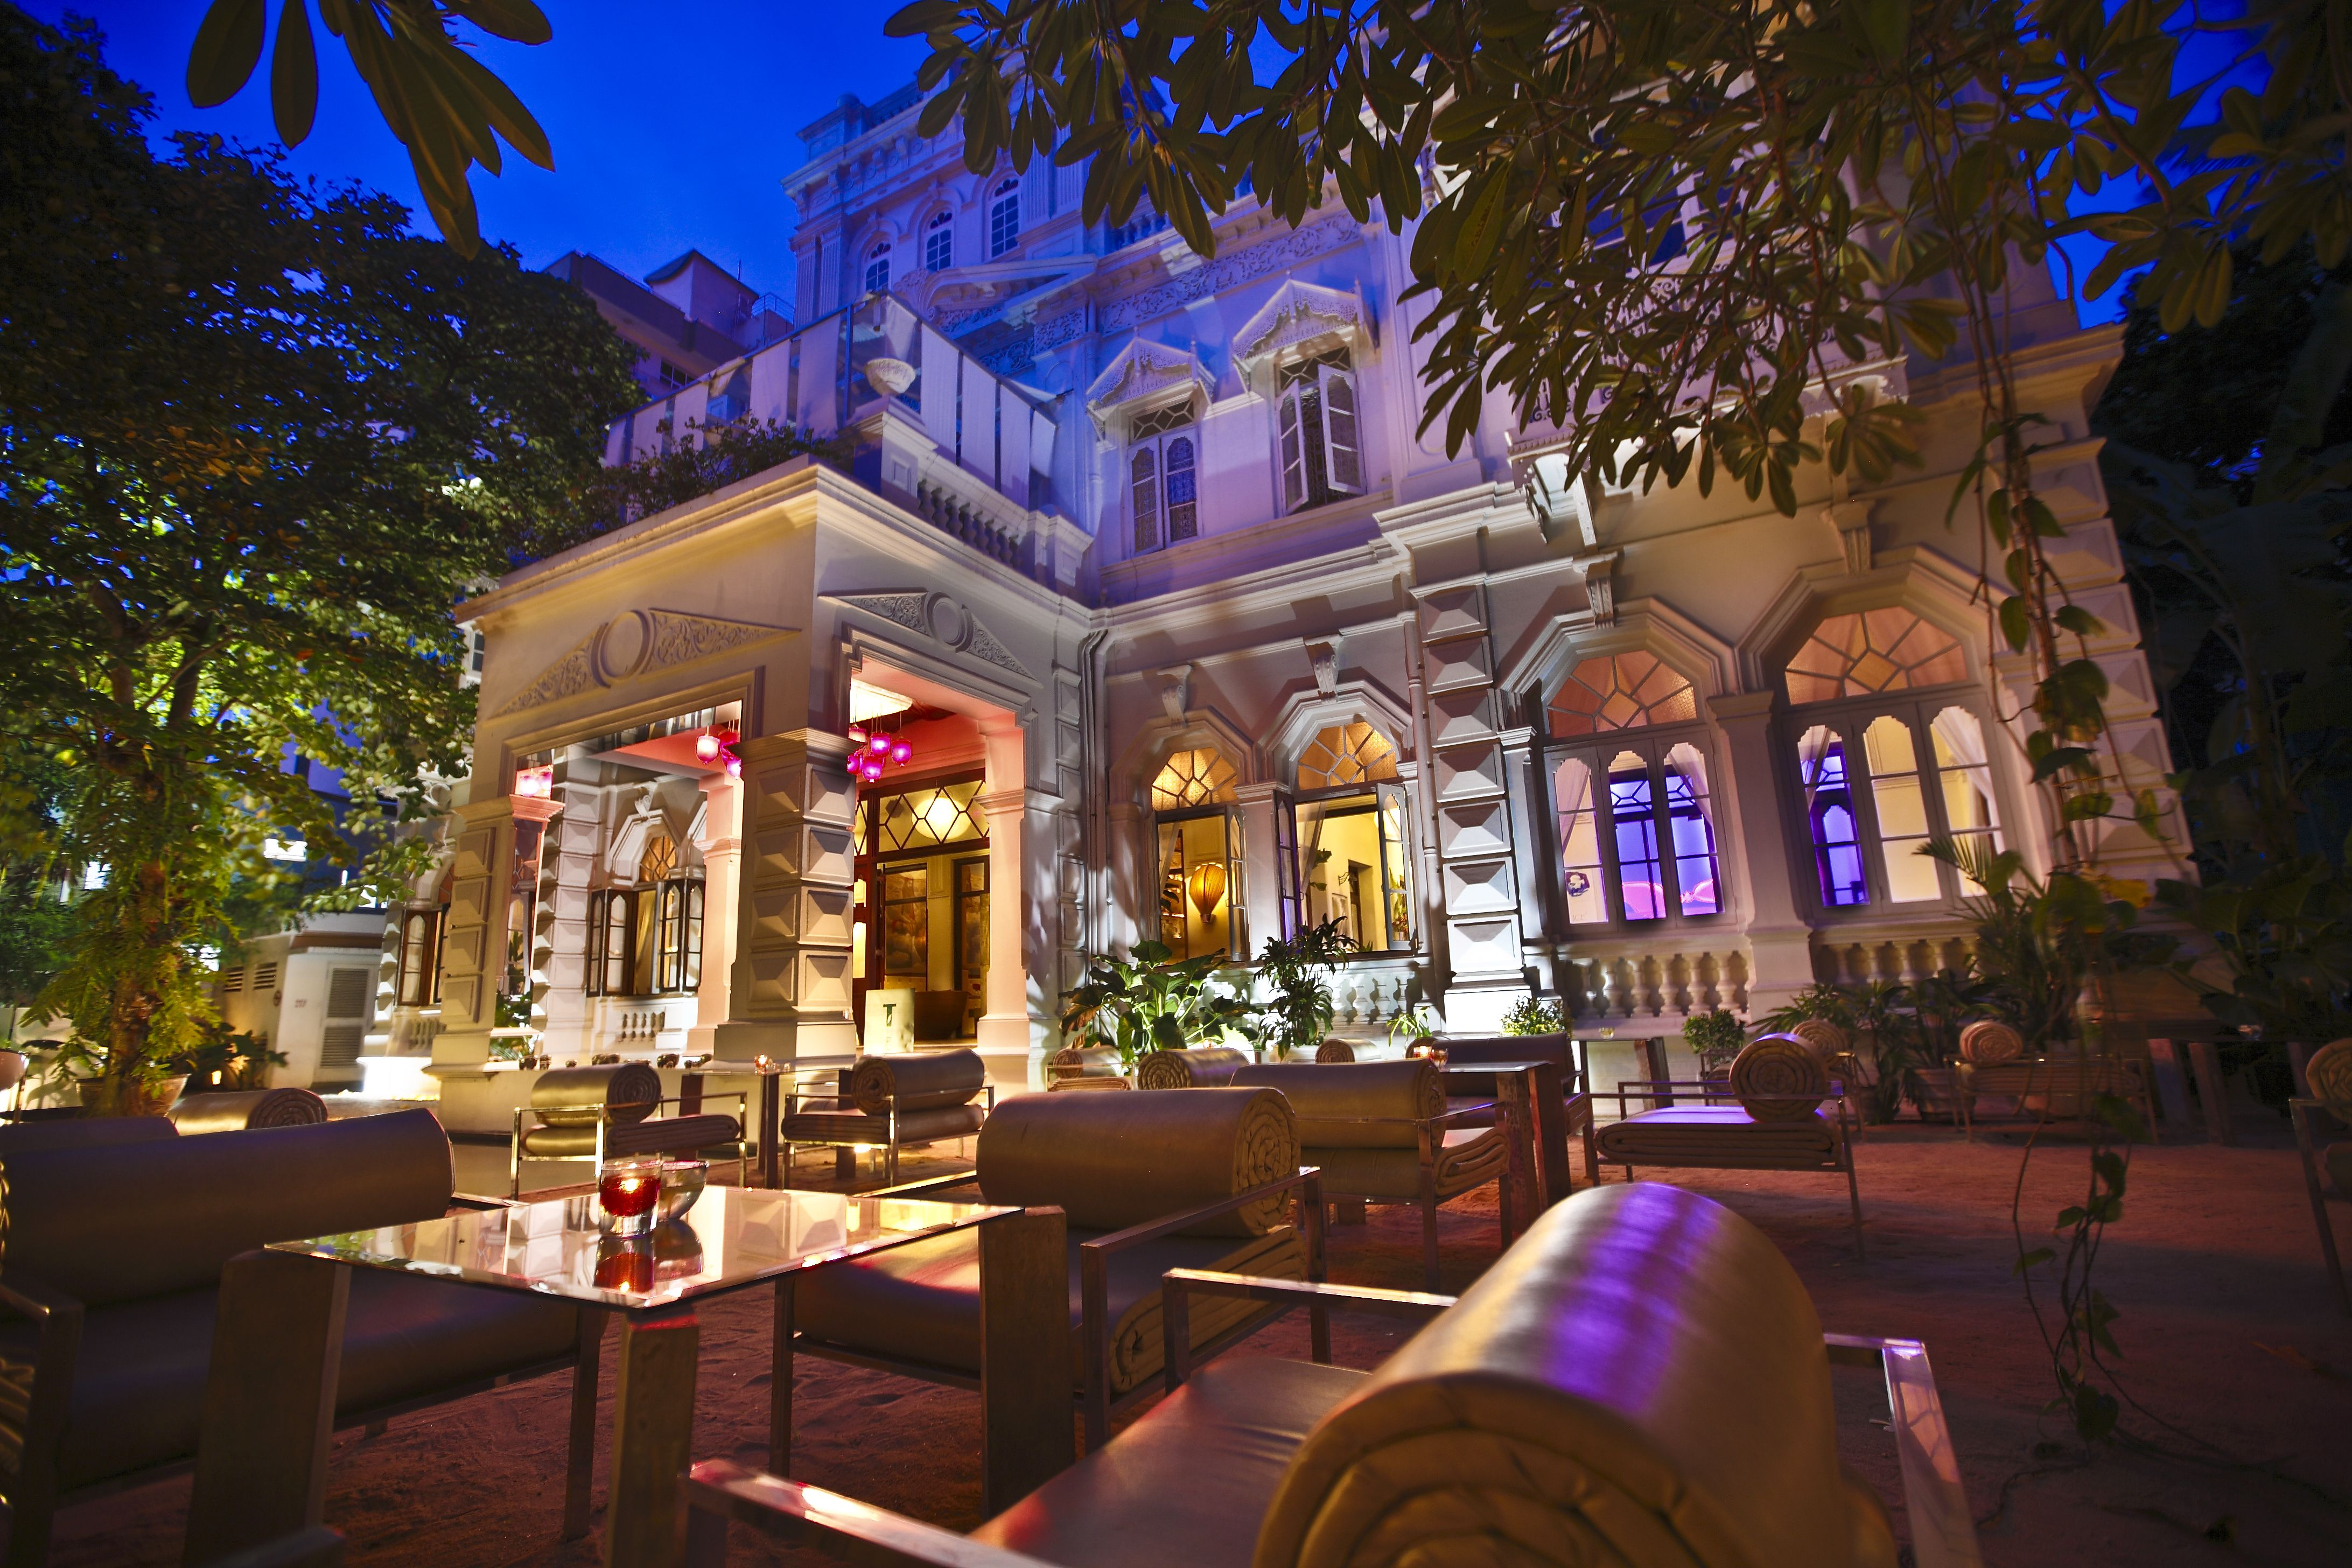 A night view of the gorgeous Mansion